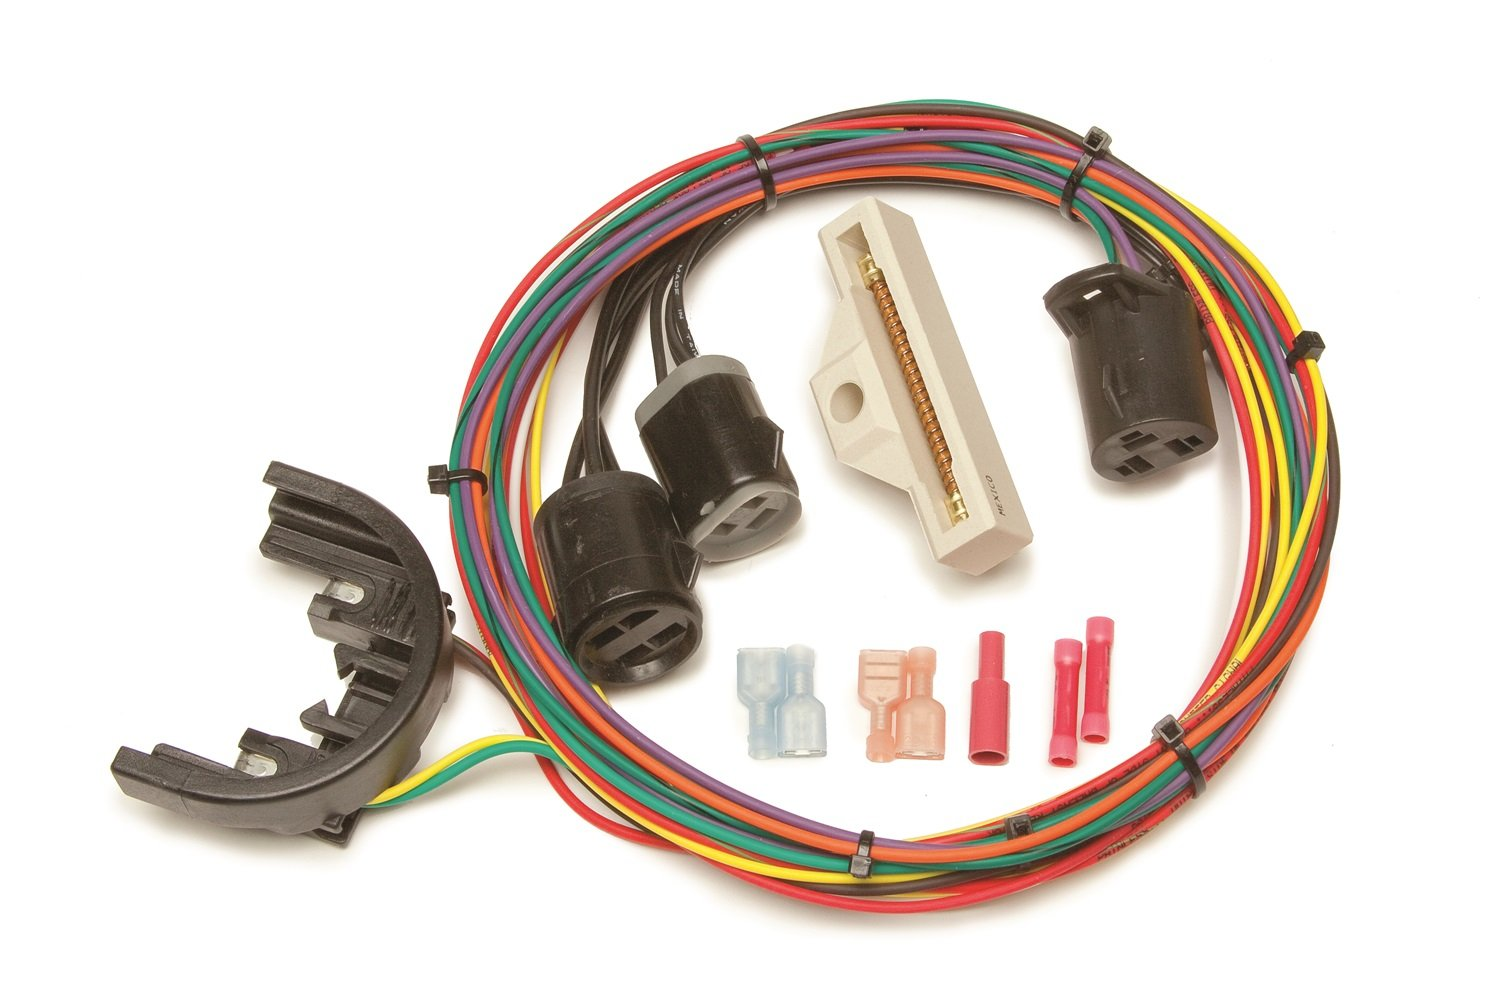 71aep5OpU L._SL1500_ amazon com painless 30819 harness automotive  at panicattacktreatment.co